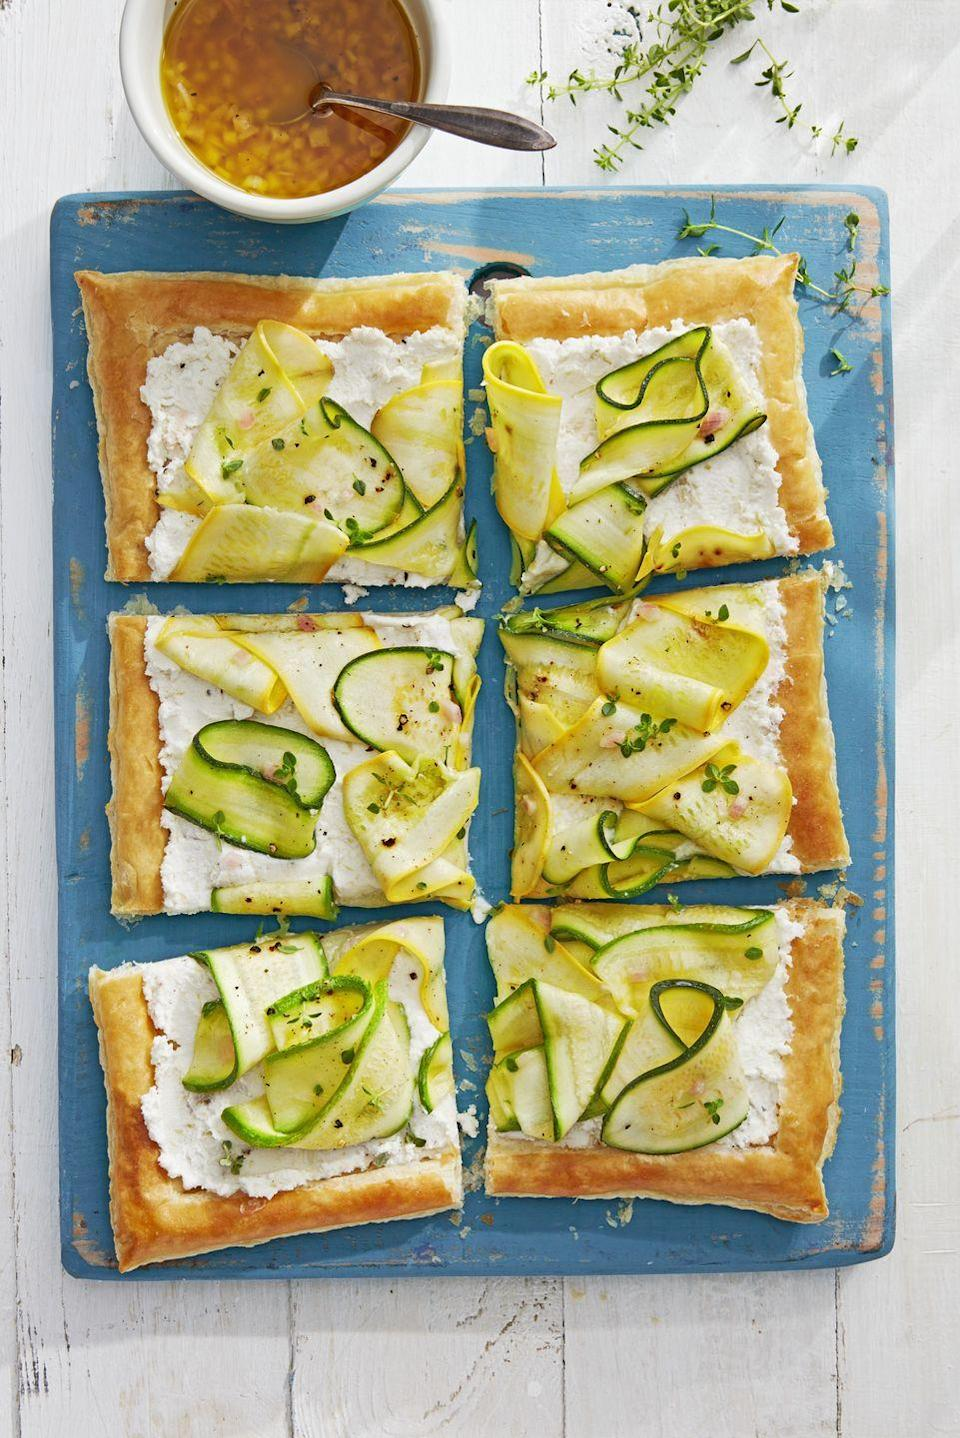 "<p>This savory appetizer is just the thing to make when you love a flaky tart topped with cheese—but also want to be slightly healthy too.</p><p><strong><a href=""https://www.countryliving.com/food-drinks/a28610238/marinated-squash-tart-recipe/"" rel=""nofollow noopener"" target=""_blank"" data-ylk=""slk:Get the recipe"" class=""link rapid-noclick-resp"">Get the recipe</a>. </strong></p><p><a class=""link rapid-noclick-resp"" href=""https://www.amazon.com/Nordic-Ware-Natural-Aluminum-Commercial/dp/B0049C2S32/?tag=syn-yahoo-20&ascsubtag=%5Bartid%7C10050.g.2966%5Bsrc%7Cyahoo-us"" rel=""nofollow noopener"" target=""_blank"" data-ylk=""slk:SHOP BAKING SHEETS"">SHOP BAKING SHEETS</a></p>"